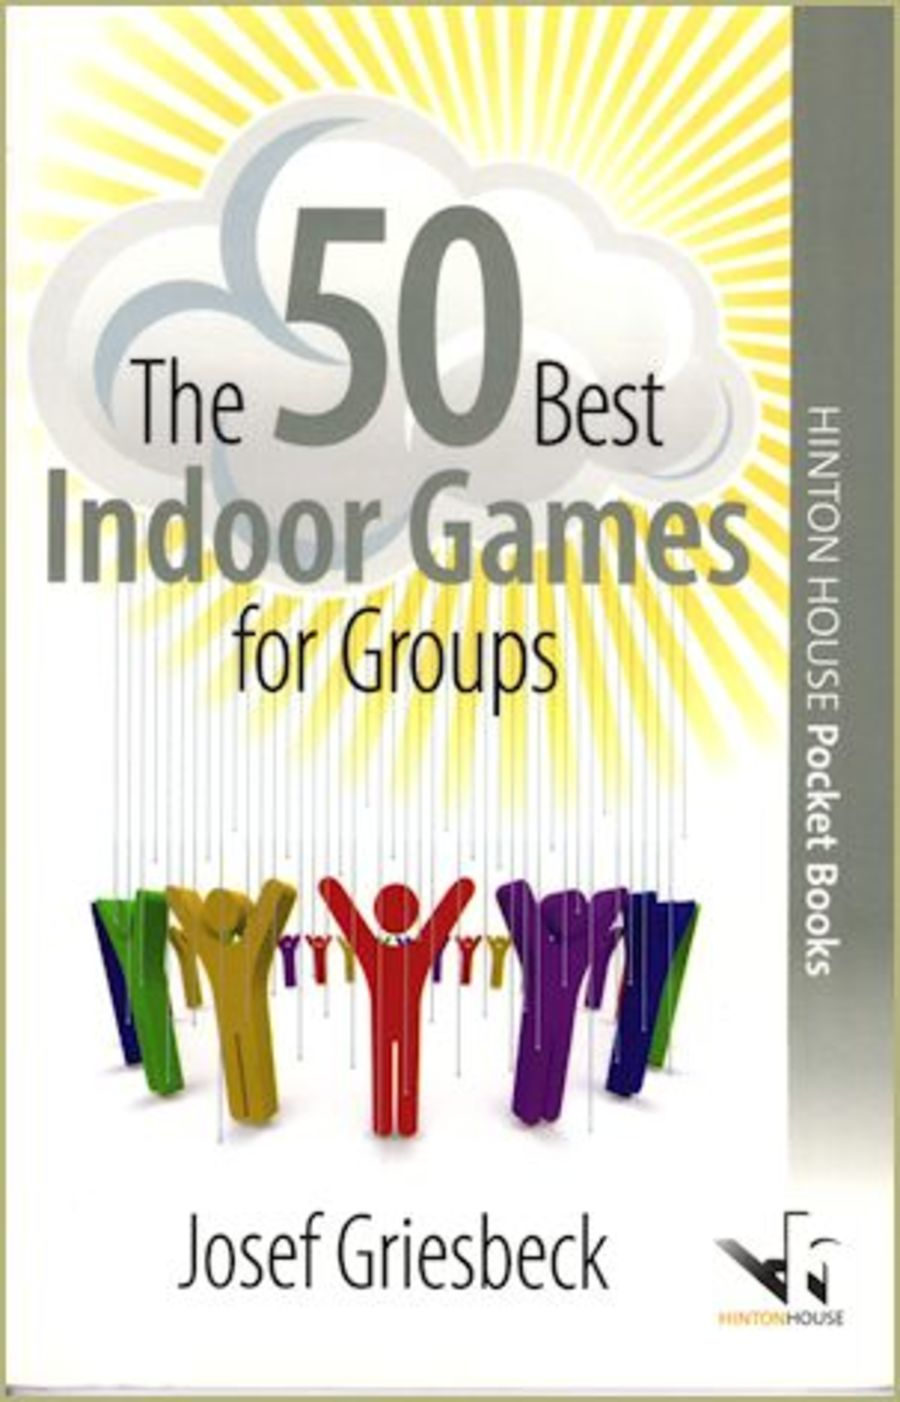 50 Best Indoor Games for Groups